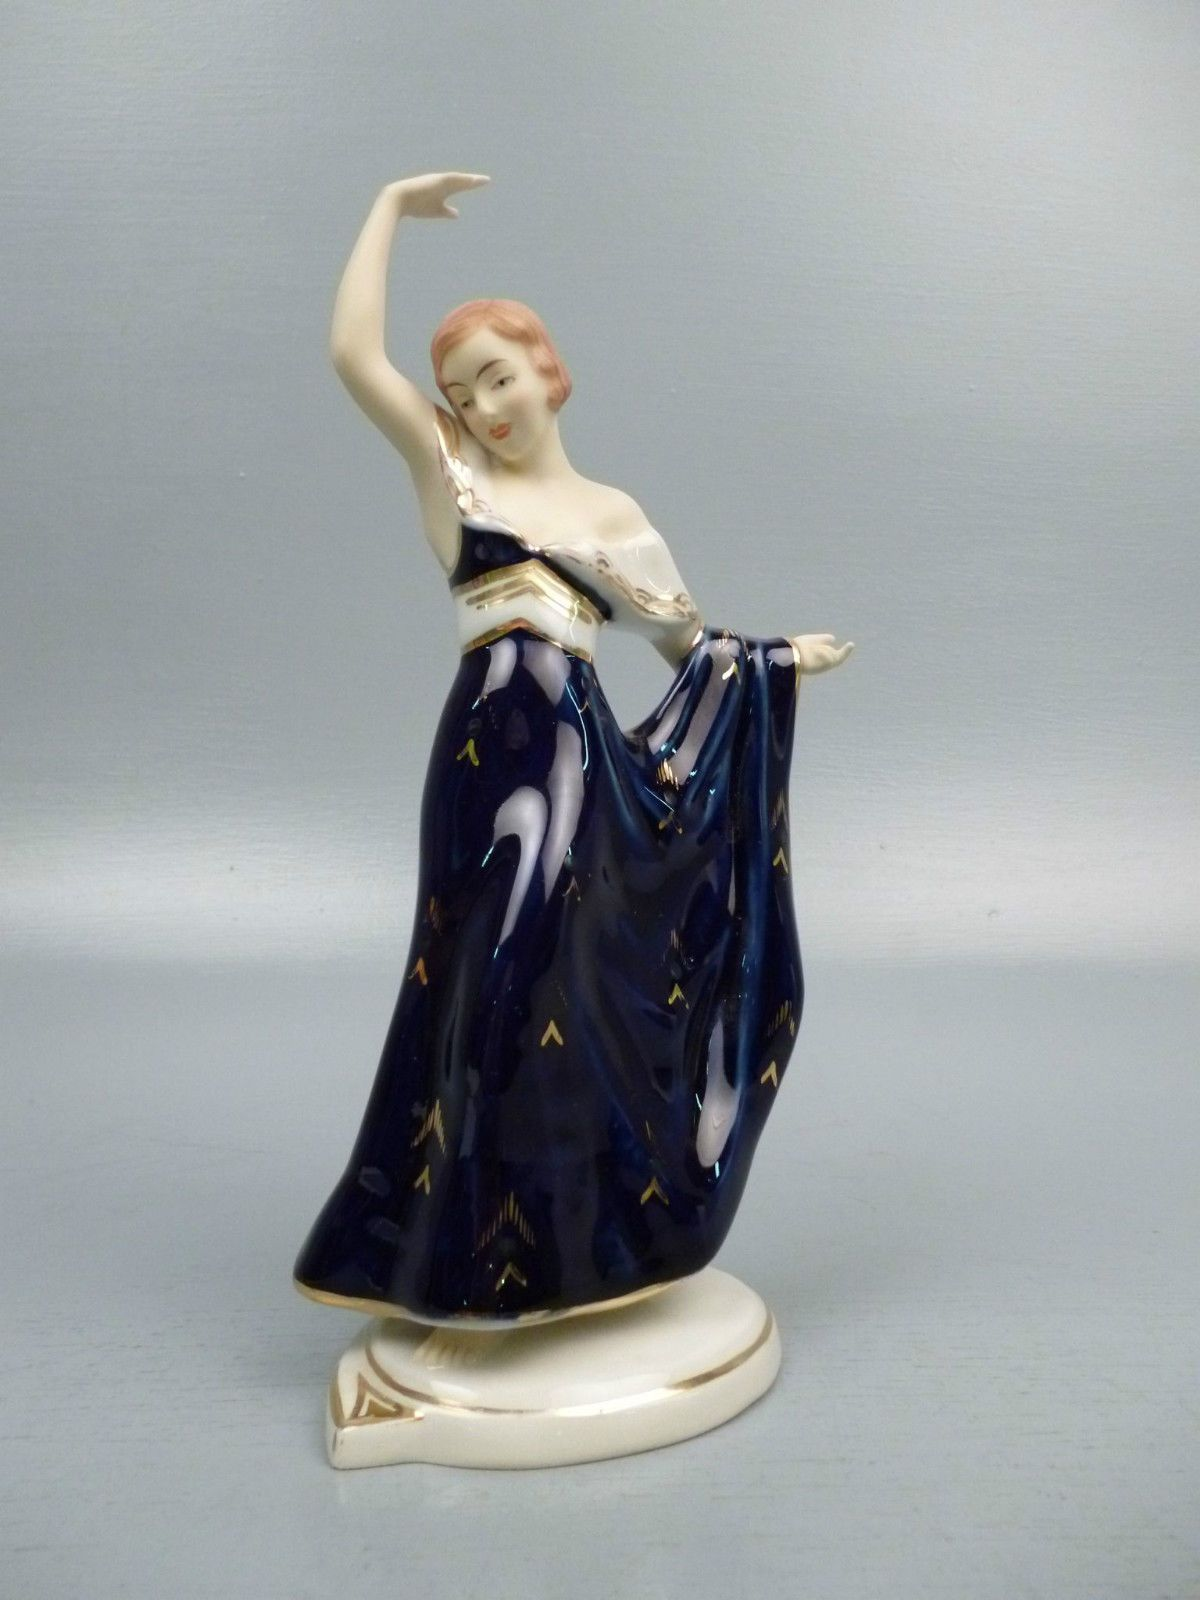 Art Deco Royal Dux Porcelain Lady Dancer Figurine Elly Strobach